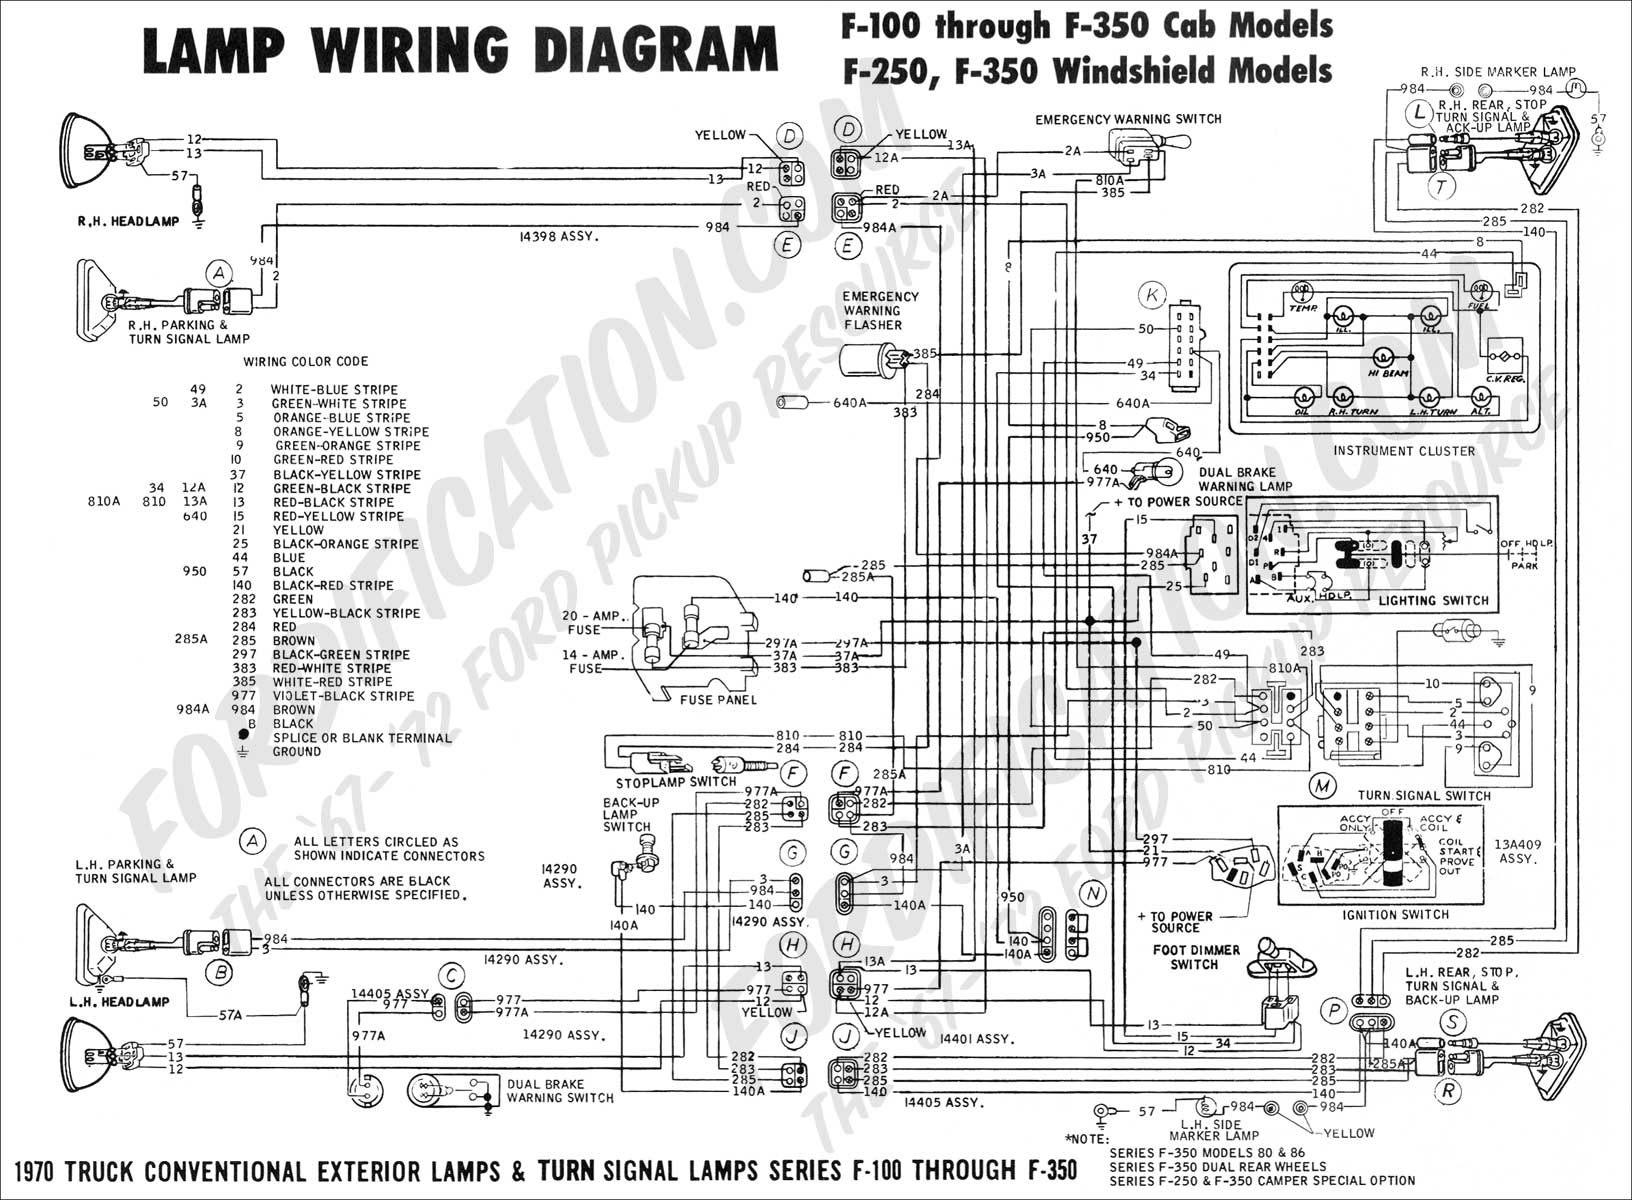 Enjoyable 4 Way Trailer Wiring Diagram Ford Ranger Wiring Diagram Data Schema Wiring Digital Resources Cettecompassionincorg